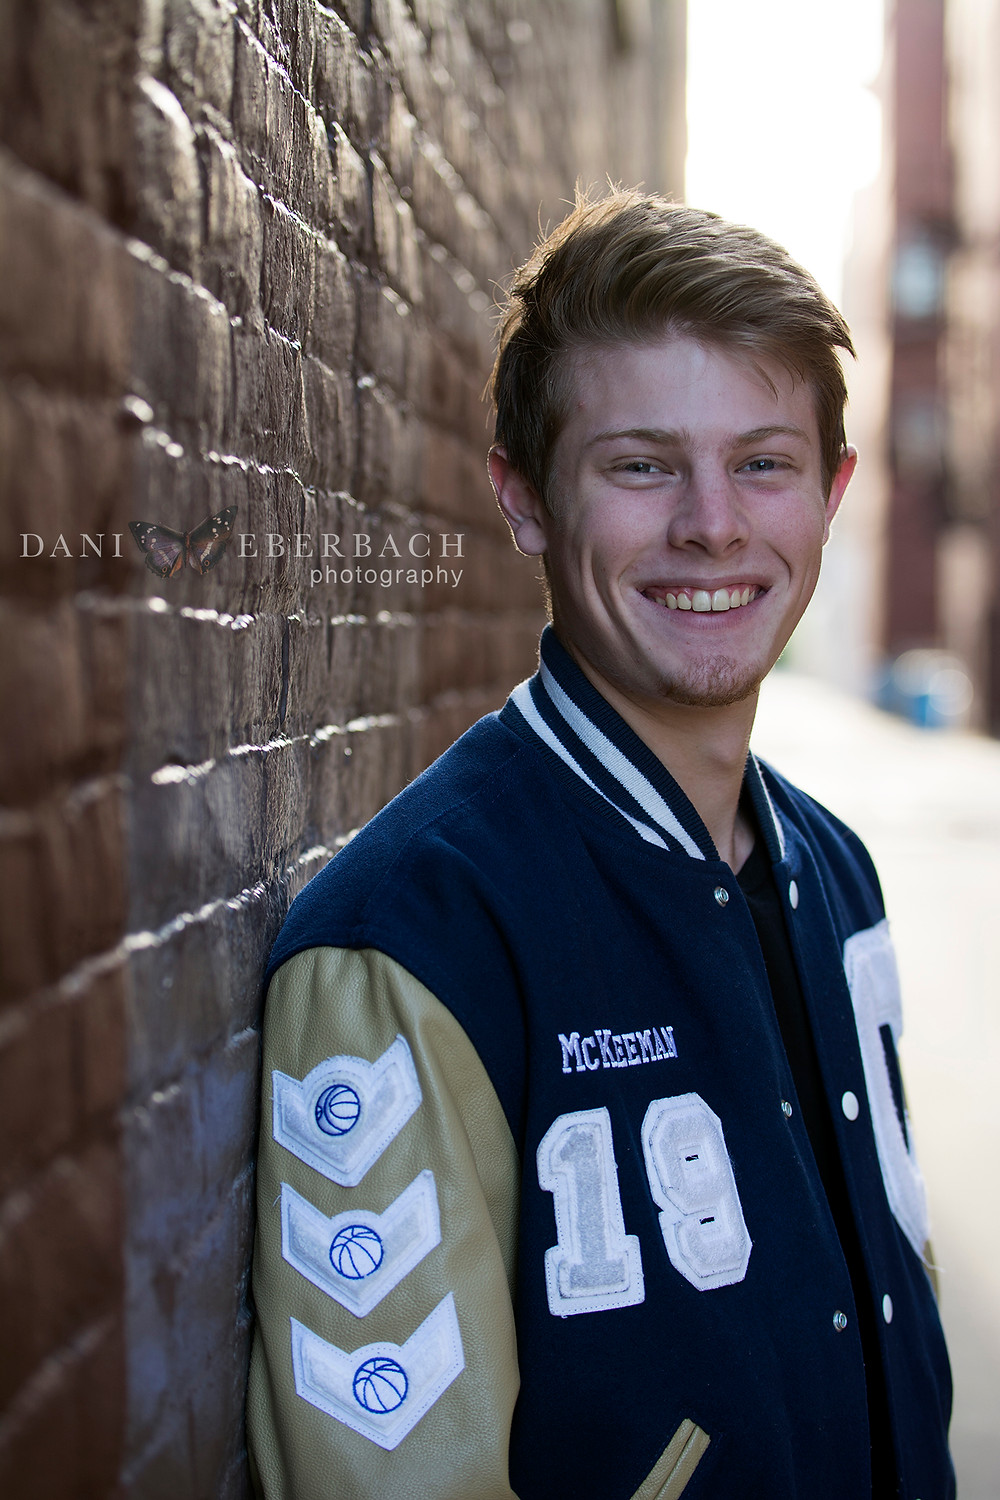 Fort Wayne senior portrait in letter jacket with brick wall